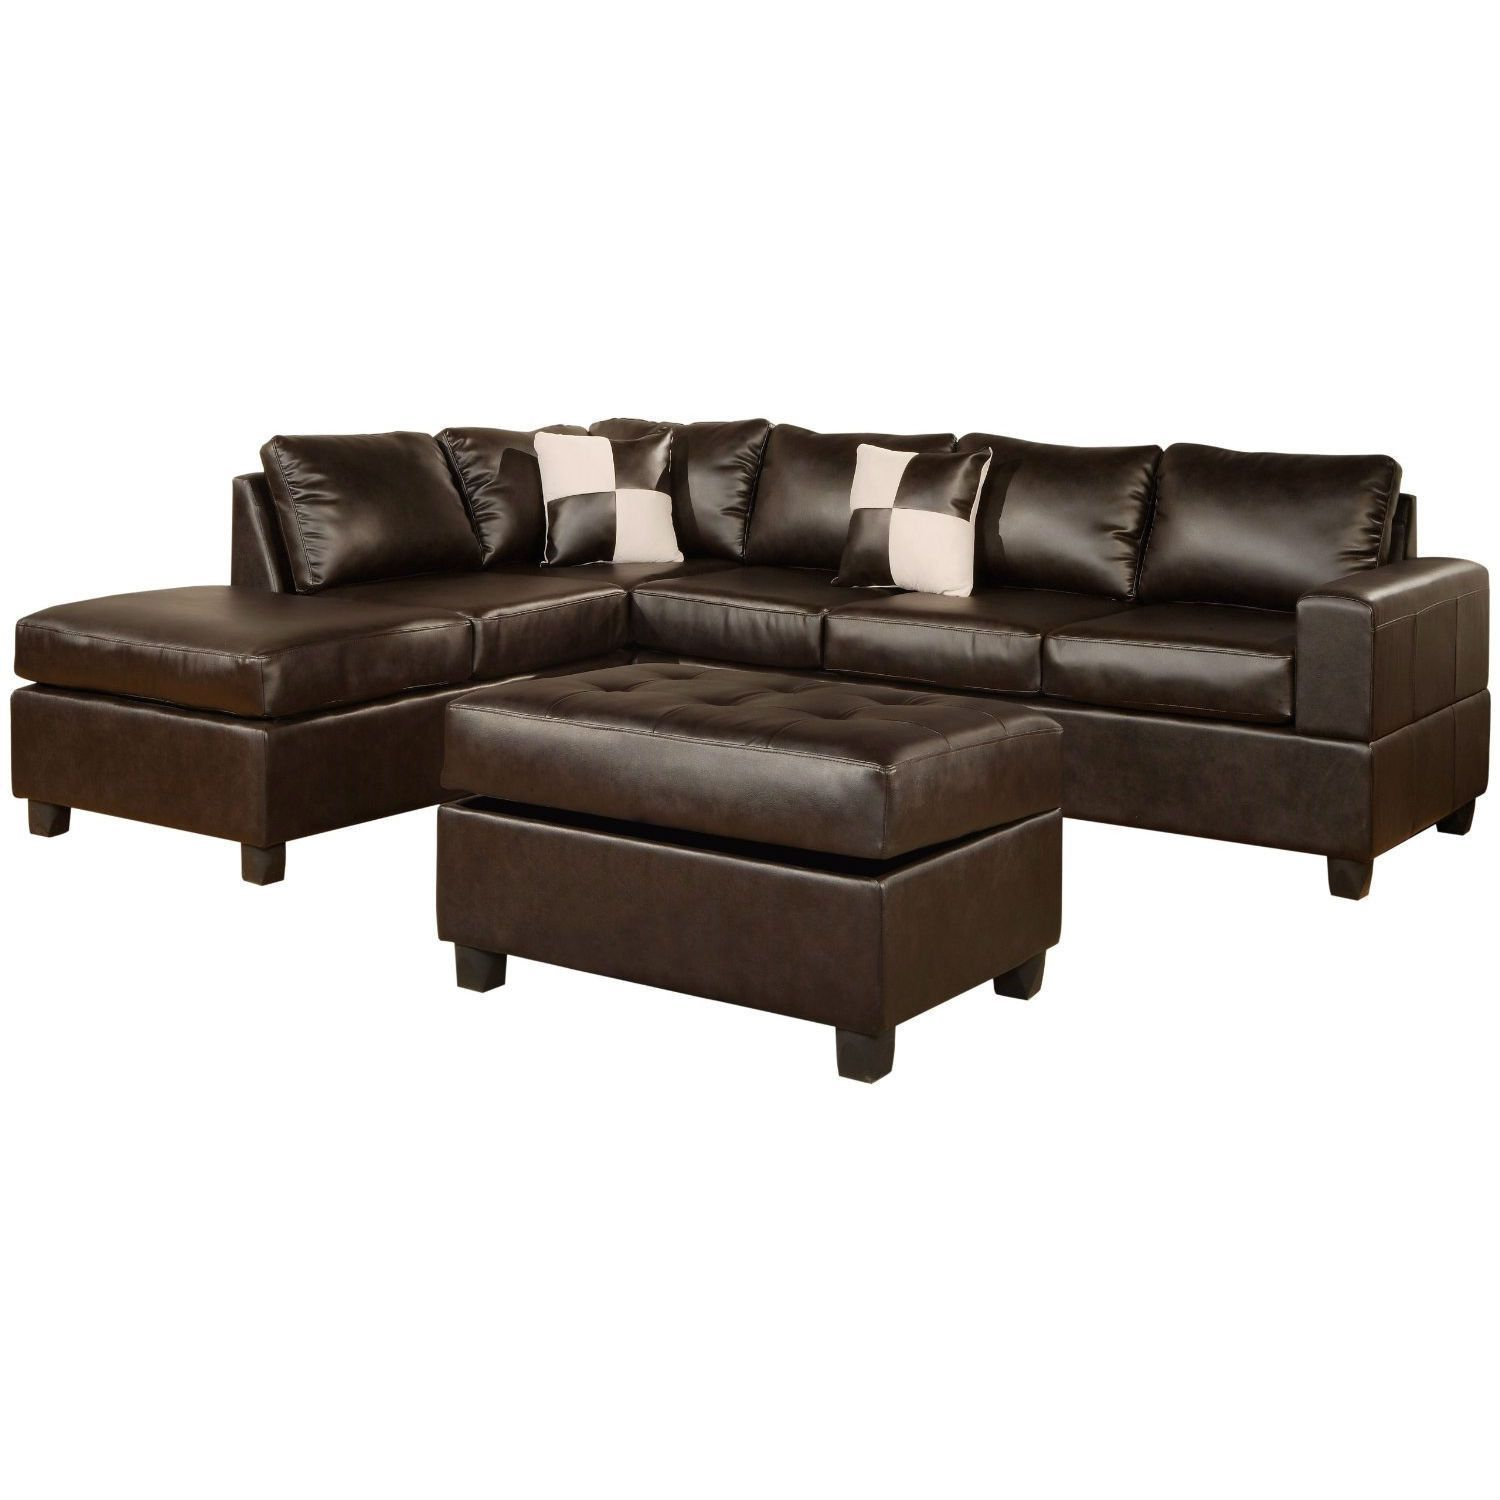 Reversible Soft Touch Faux Leather 3 Piece Sectional Sofa Set